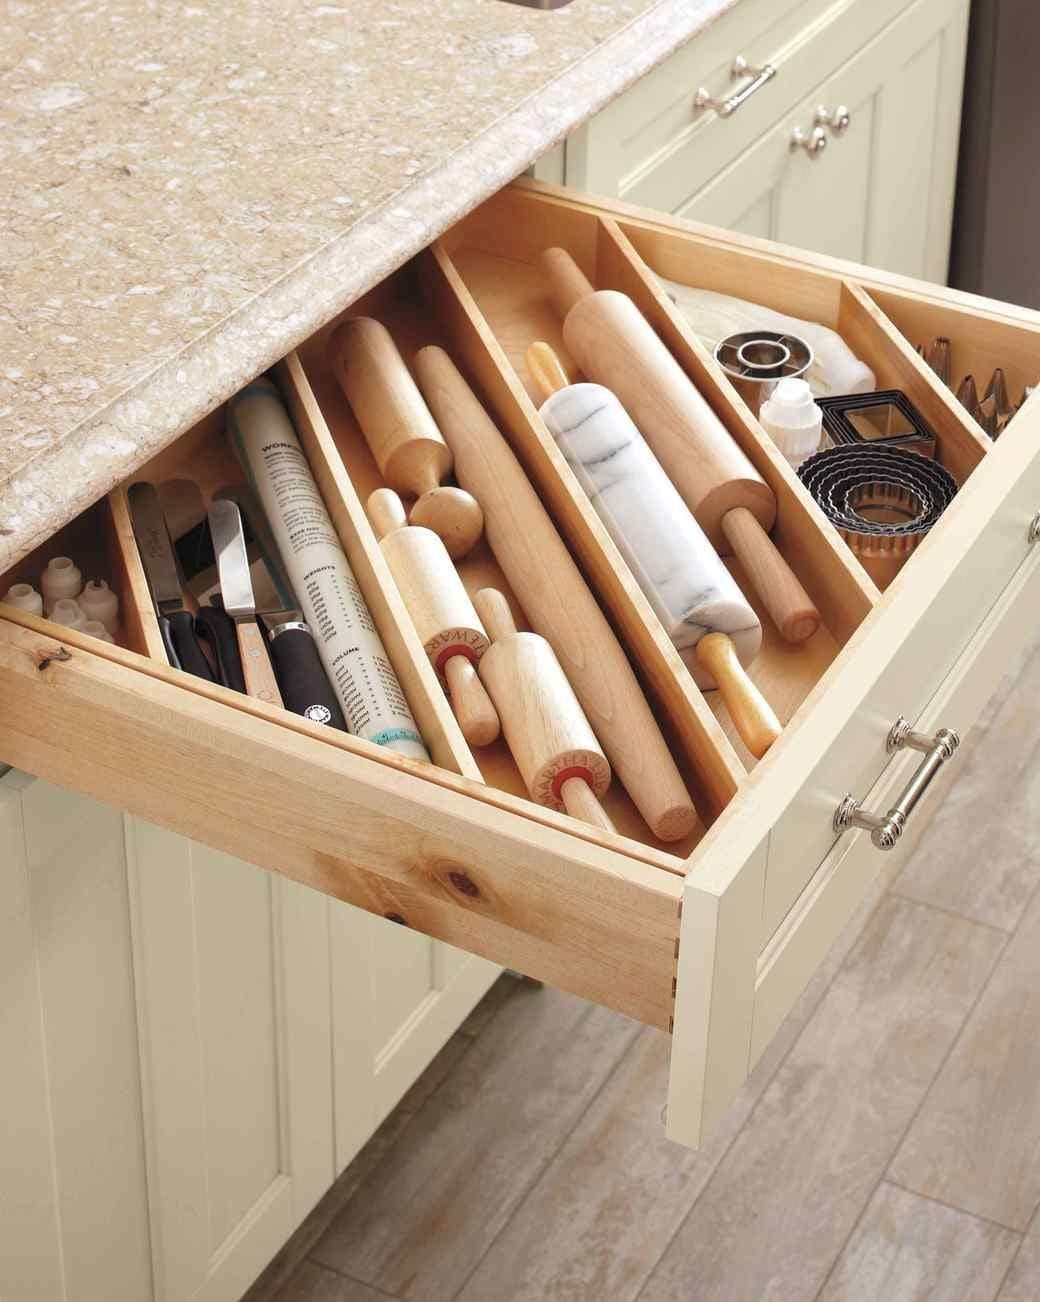 Diy Ideas For Impeccably Organized Drawers Kitchen Drawer